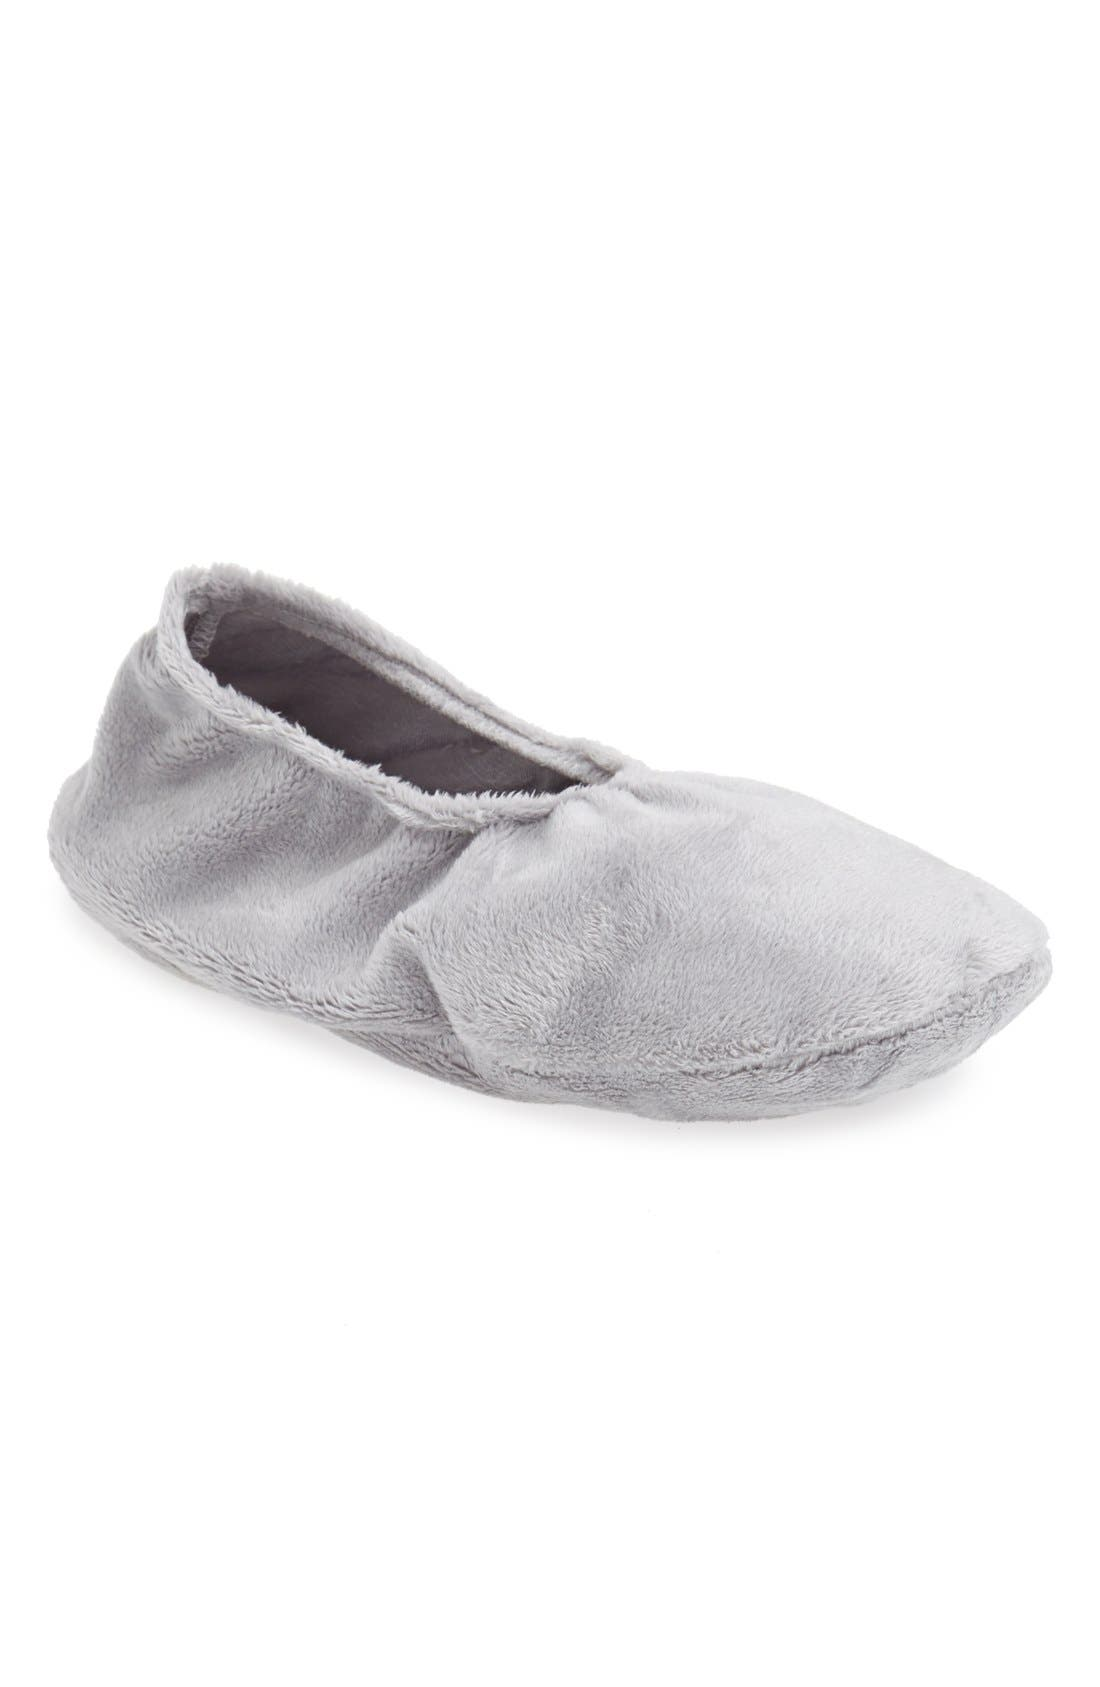 Solid Silver Footies,                         Main,                         color, 000